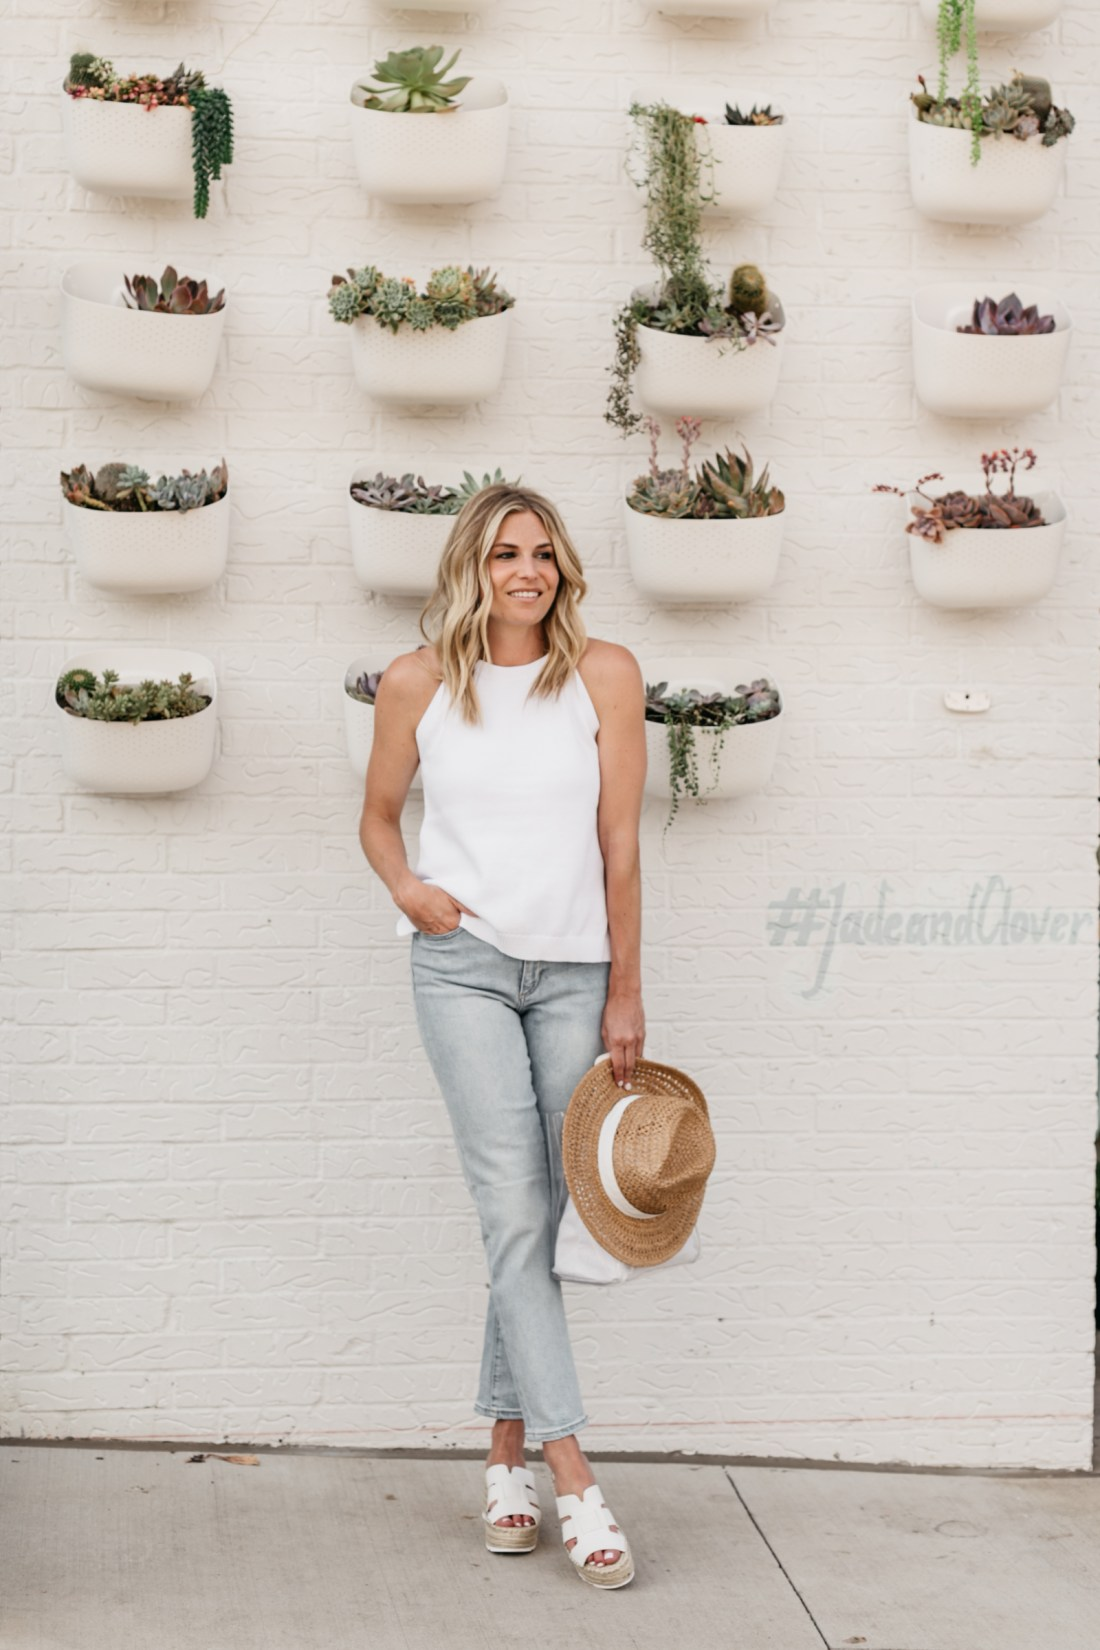 summer vacation outfits - white tee and jeans outfit